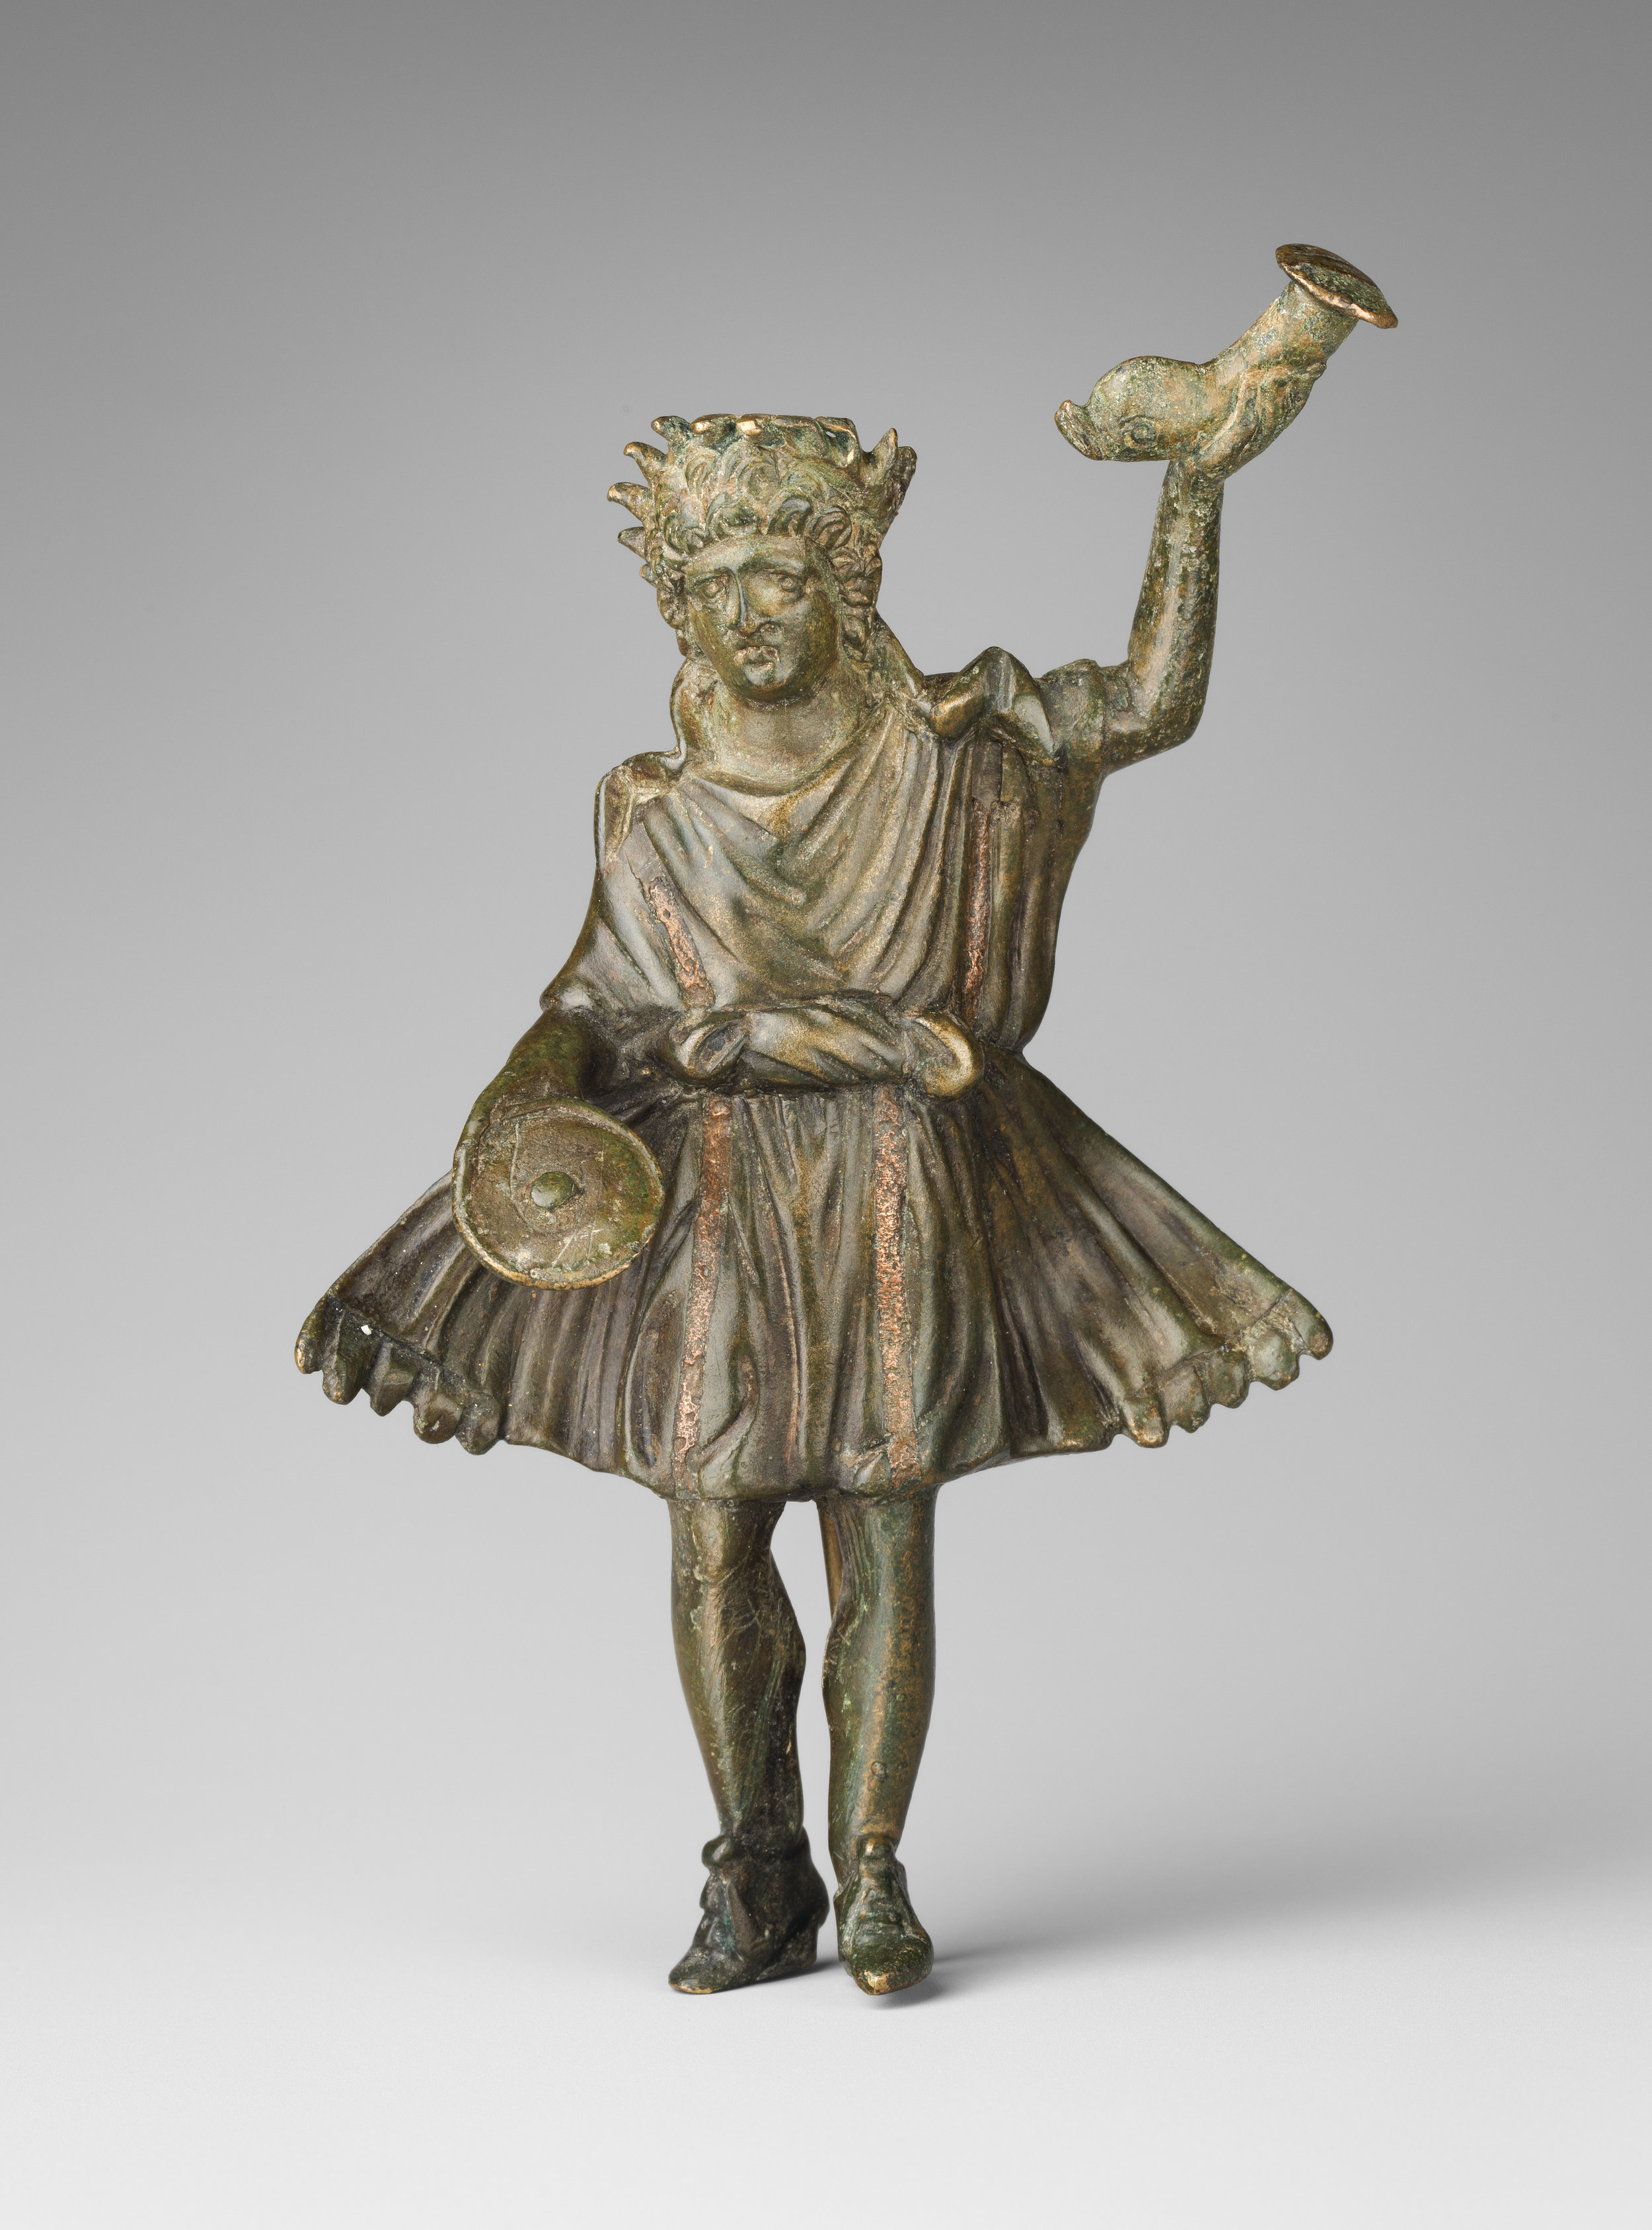 Another singular lar, with rhyton in left hand. ( Met Museum )